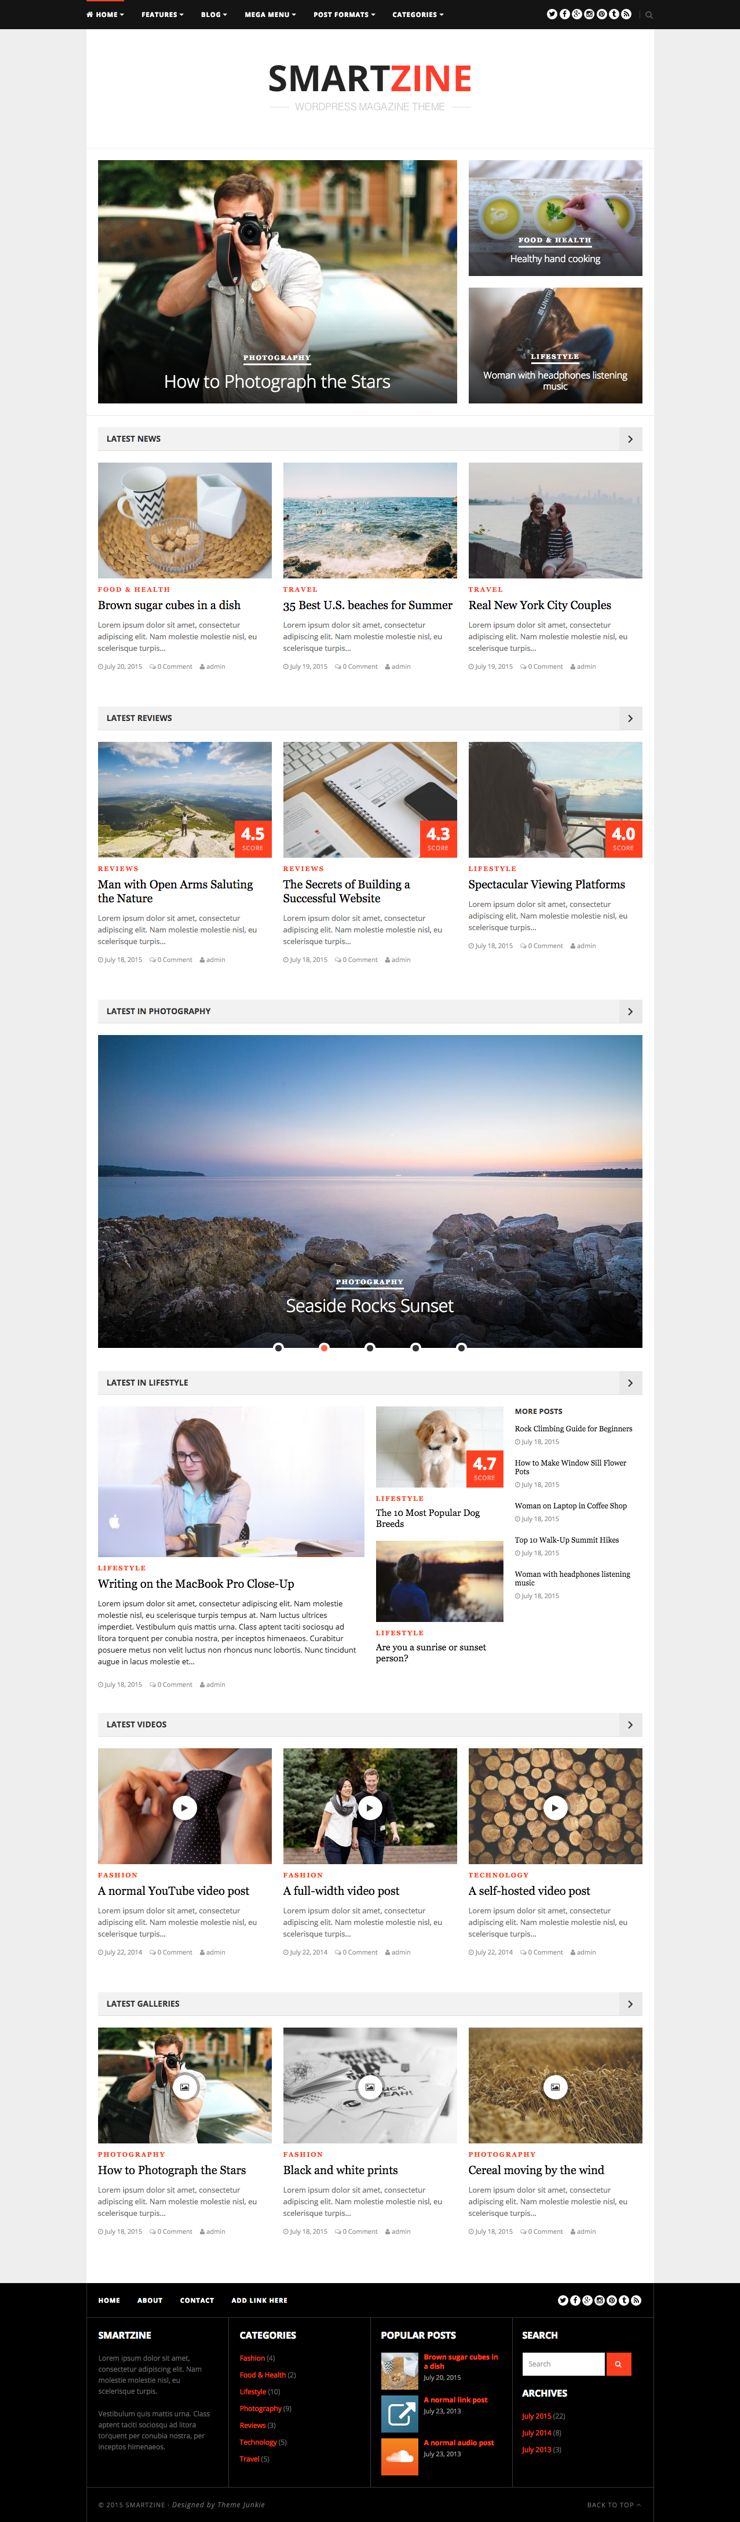 SmartZine WordPress News & Magazine Theme